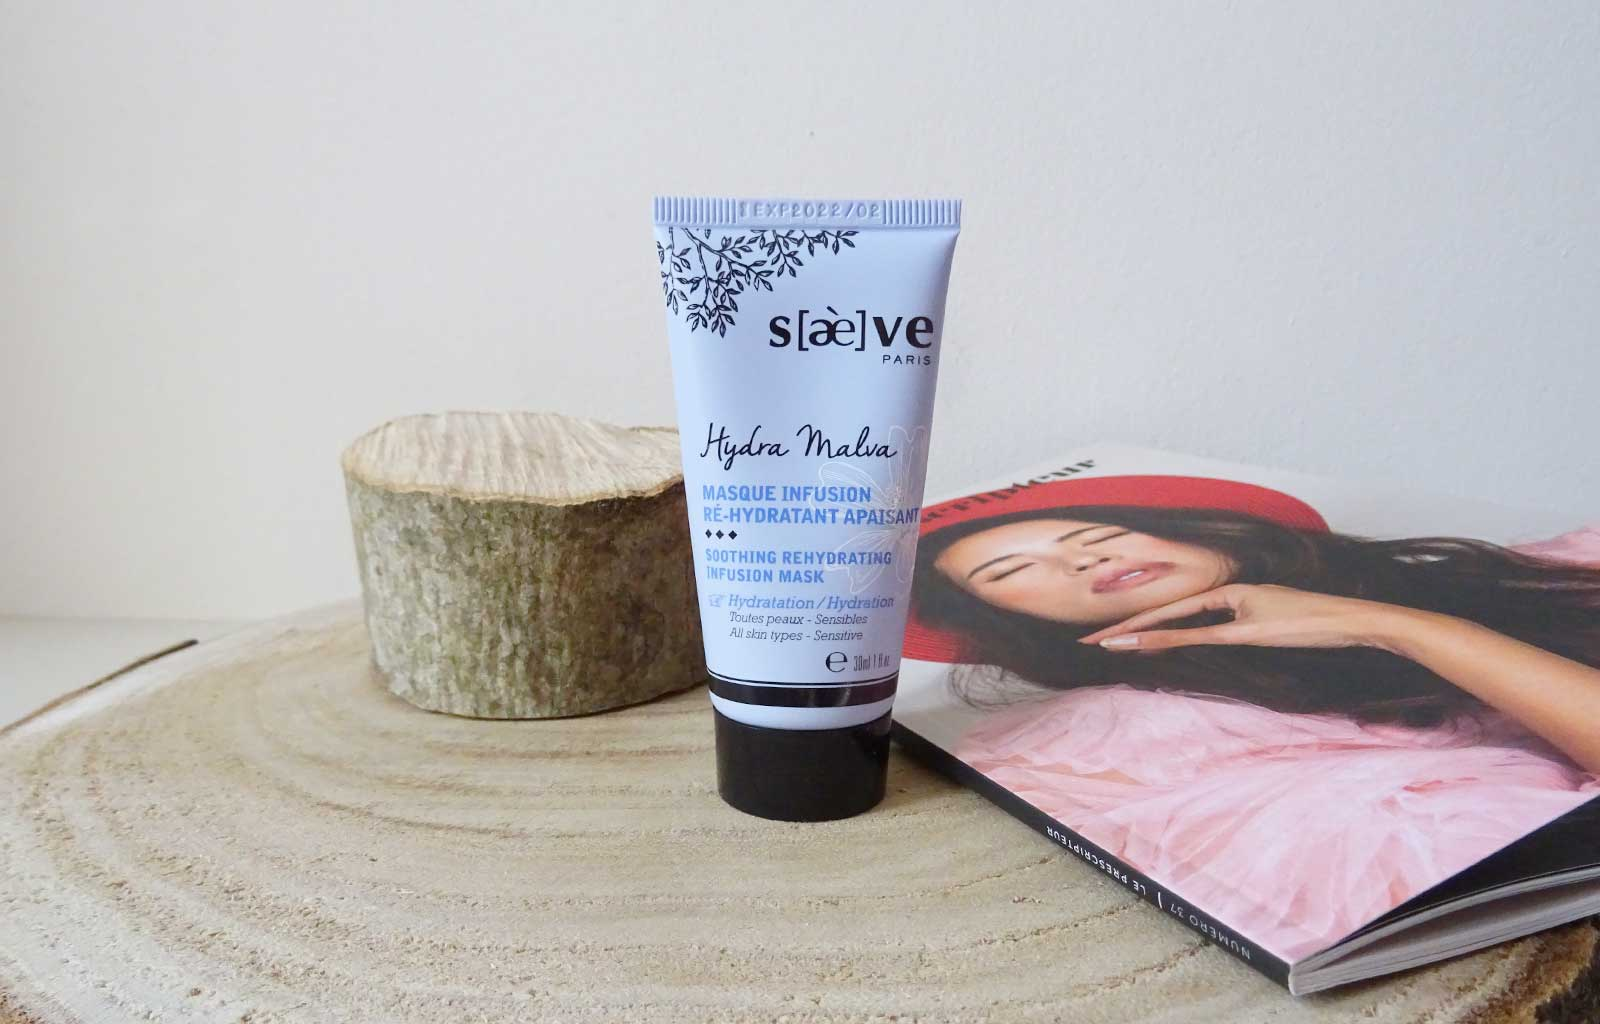 Prescription Lab masque saeve